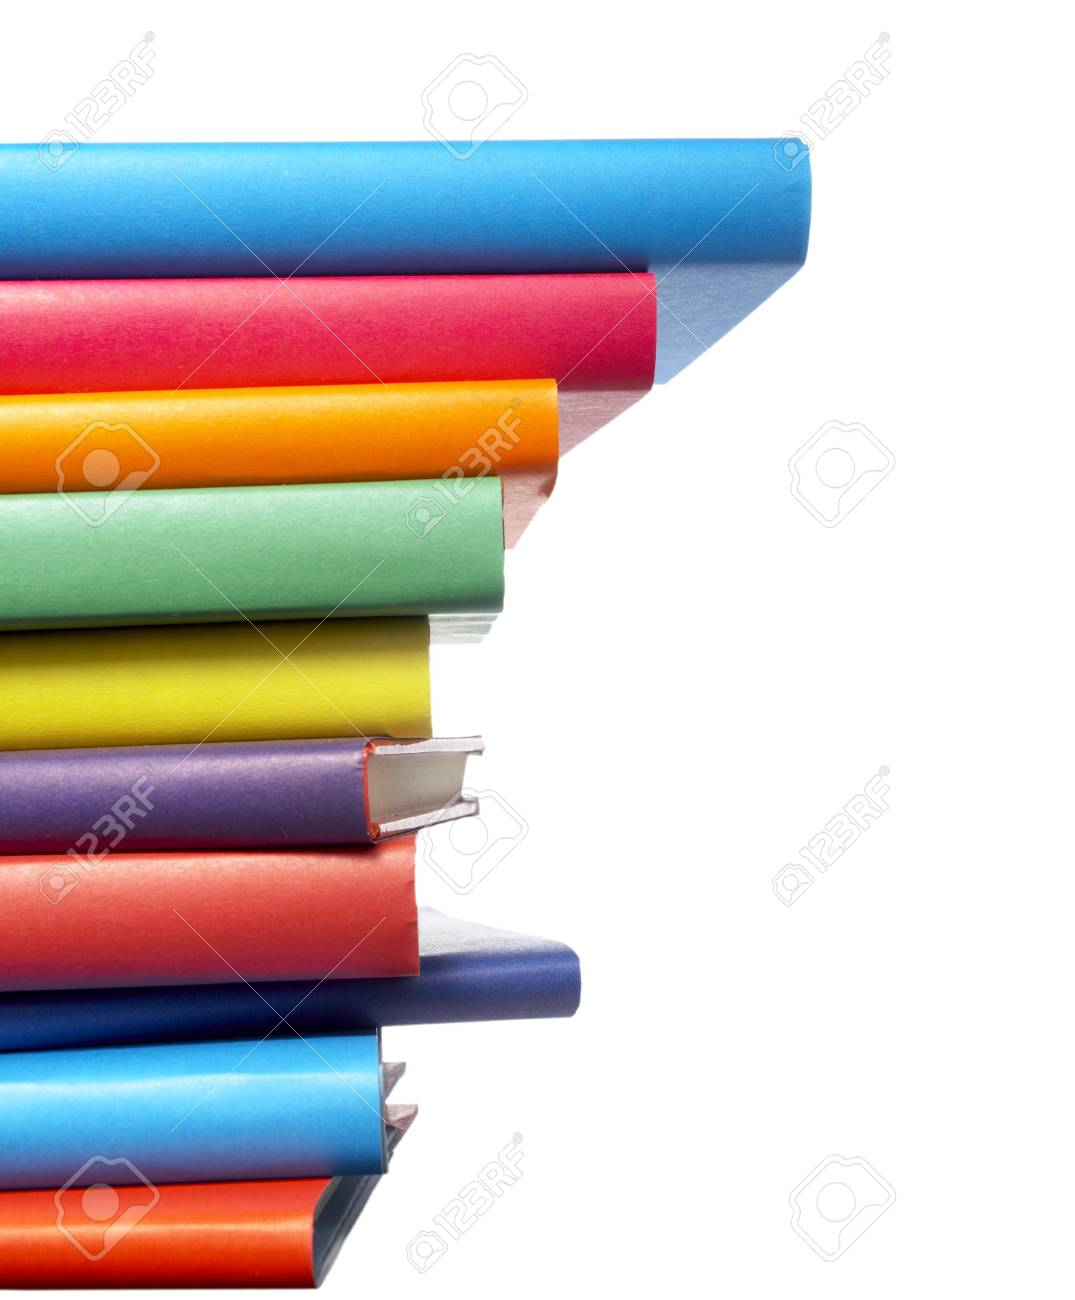 close up of stack of colorful books on white background Stock Photo - 4872231